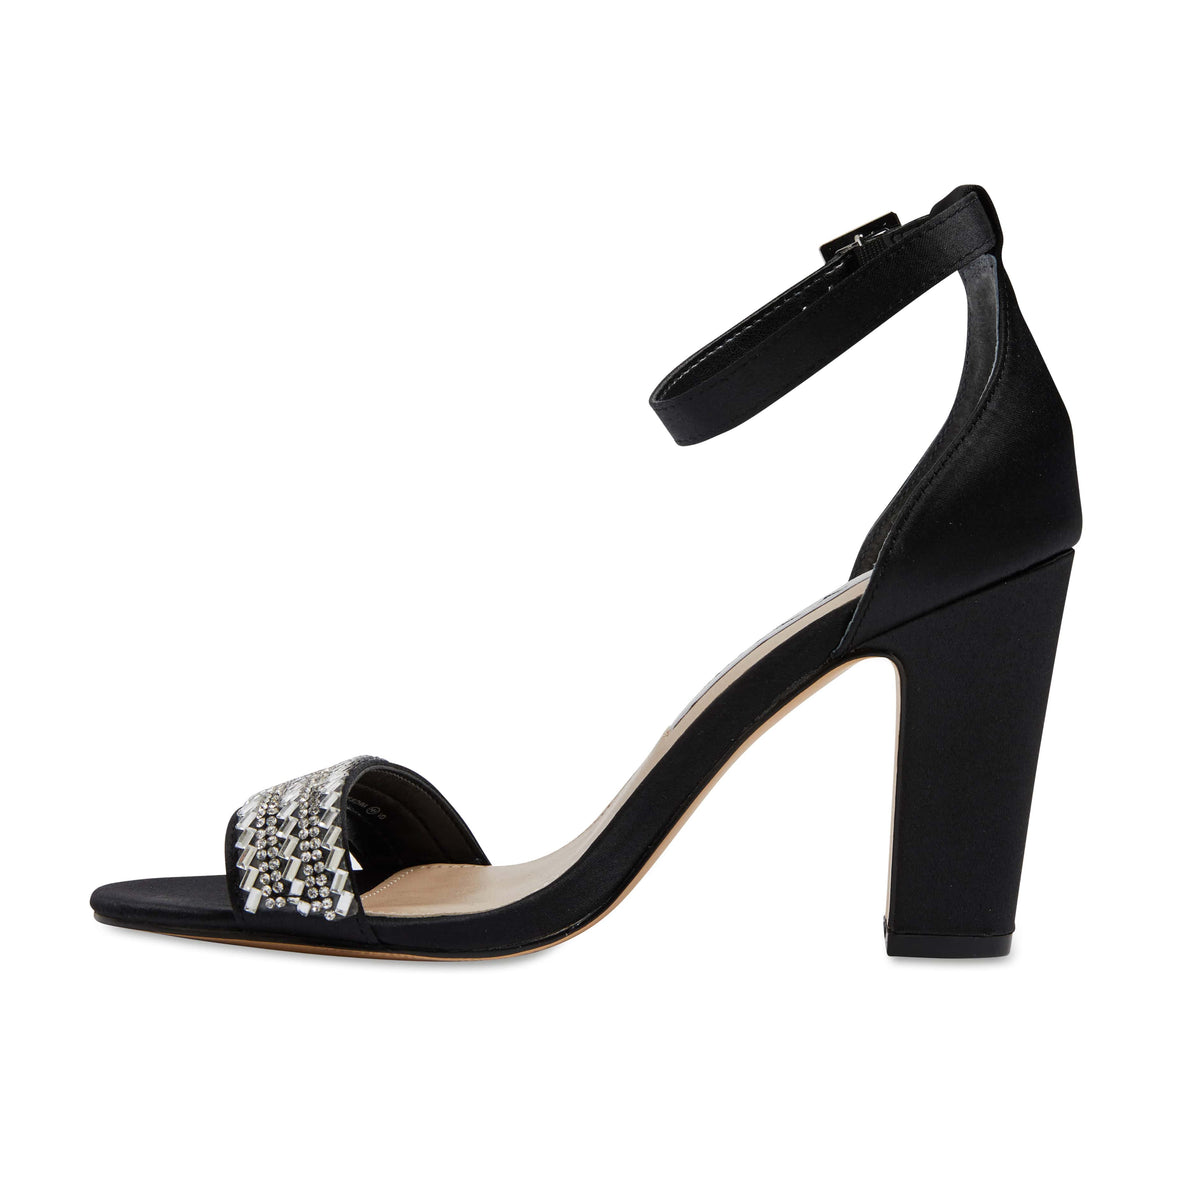 Suzette Heel in Black Satin